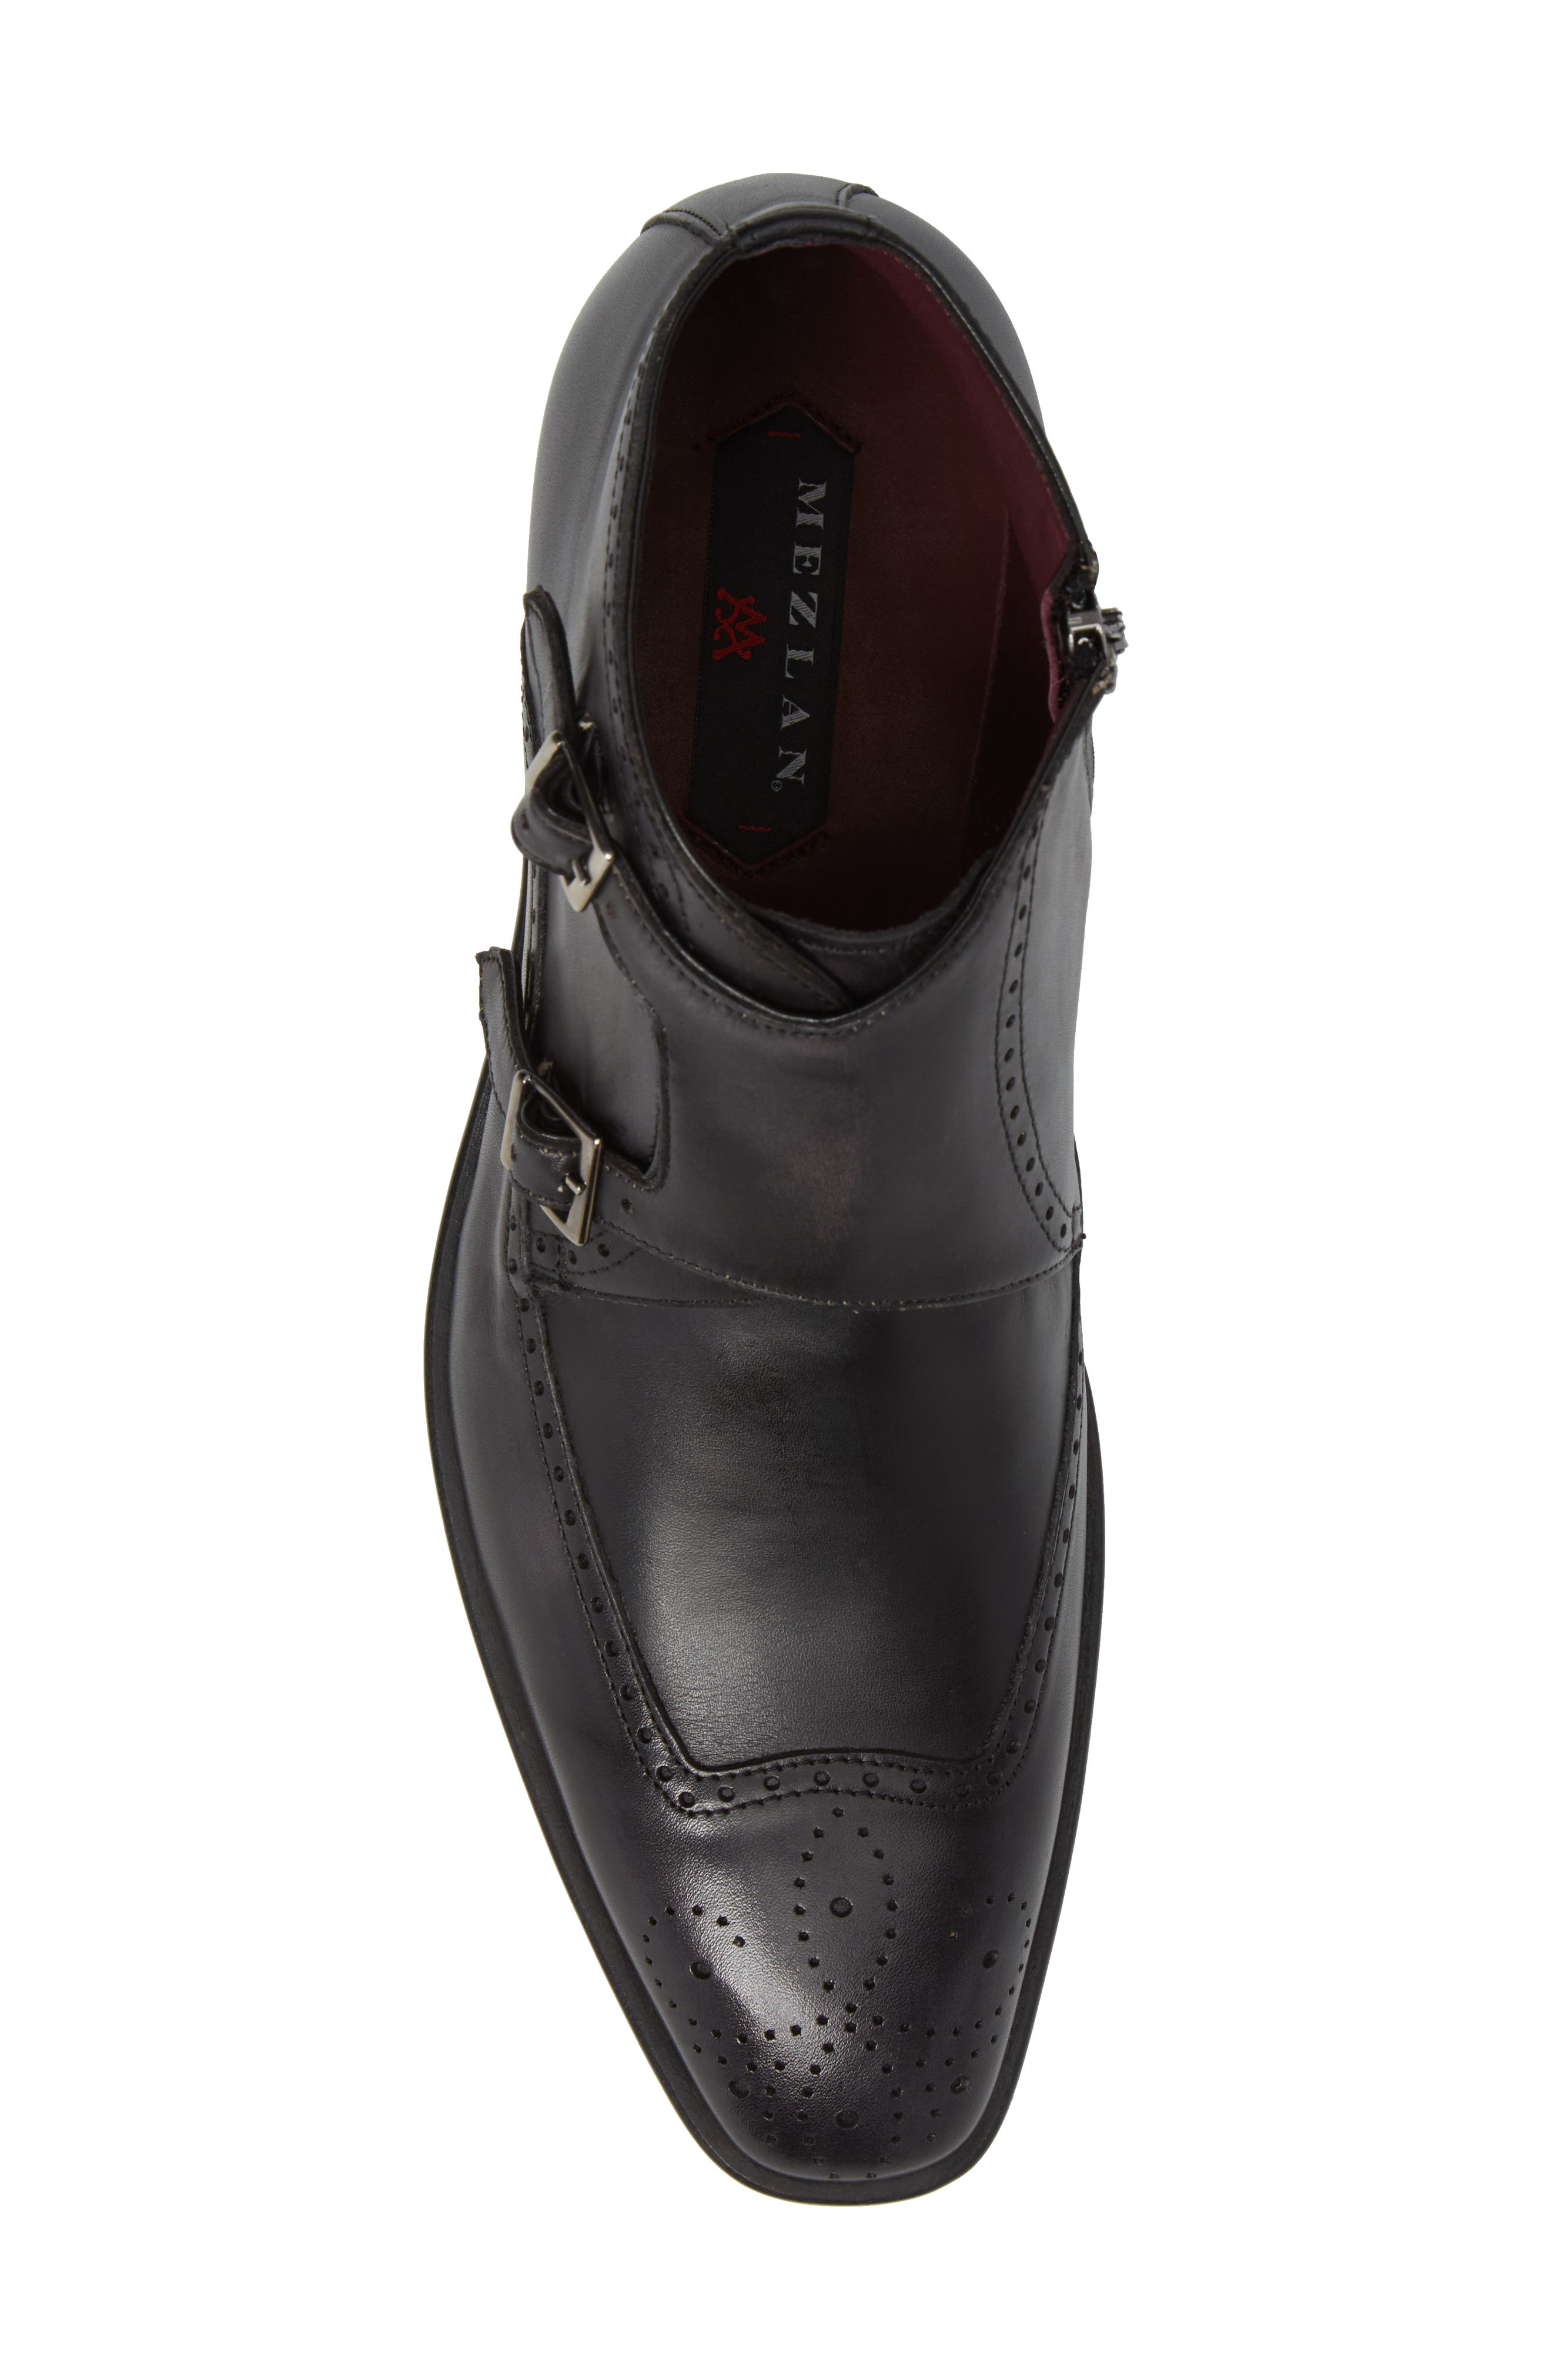 Taberna Double Monk Strap Boot,                             Alternate thumbnail 5, color,                             GRAPHITE LEATHER